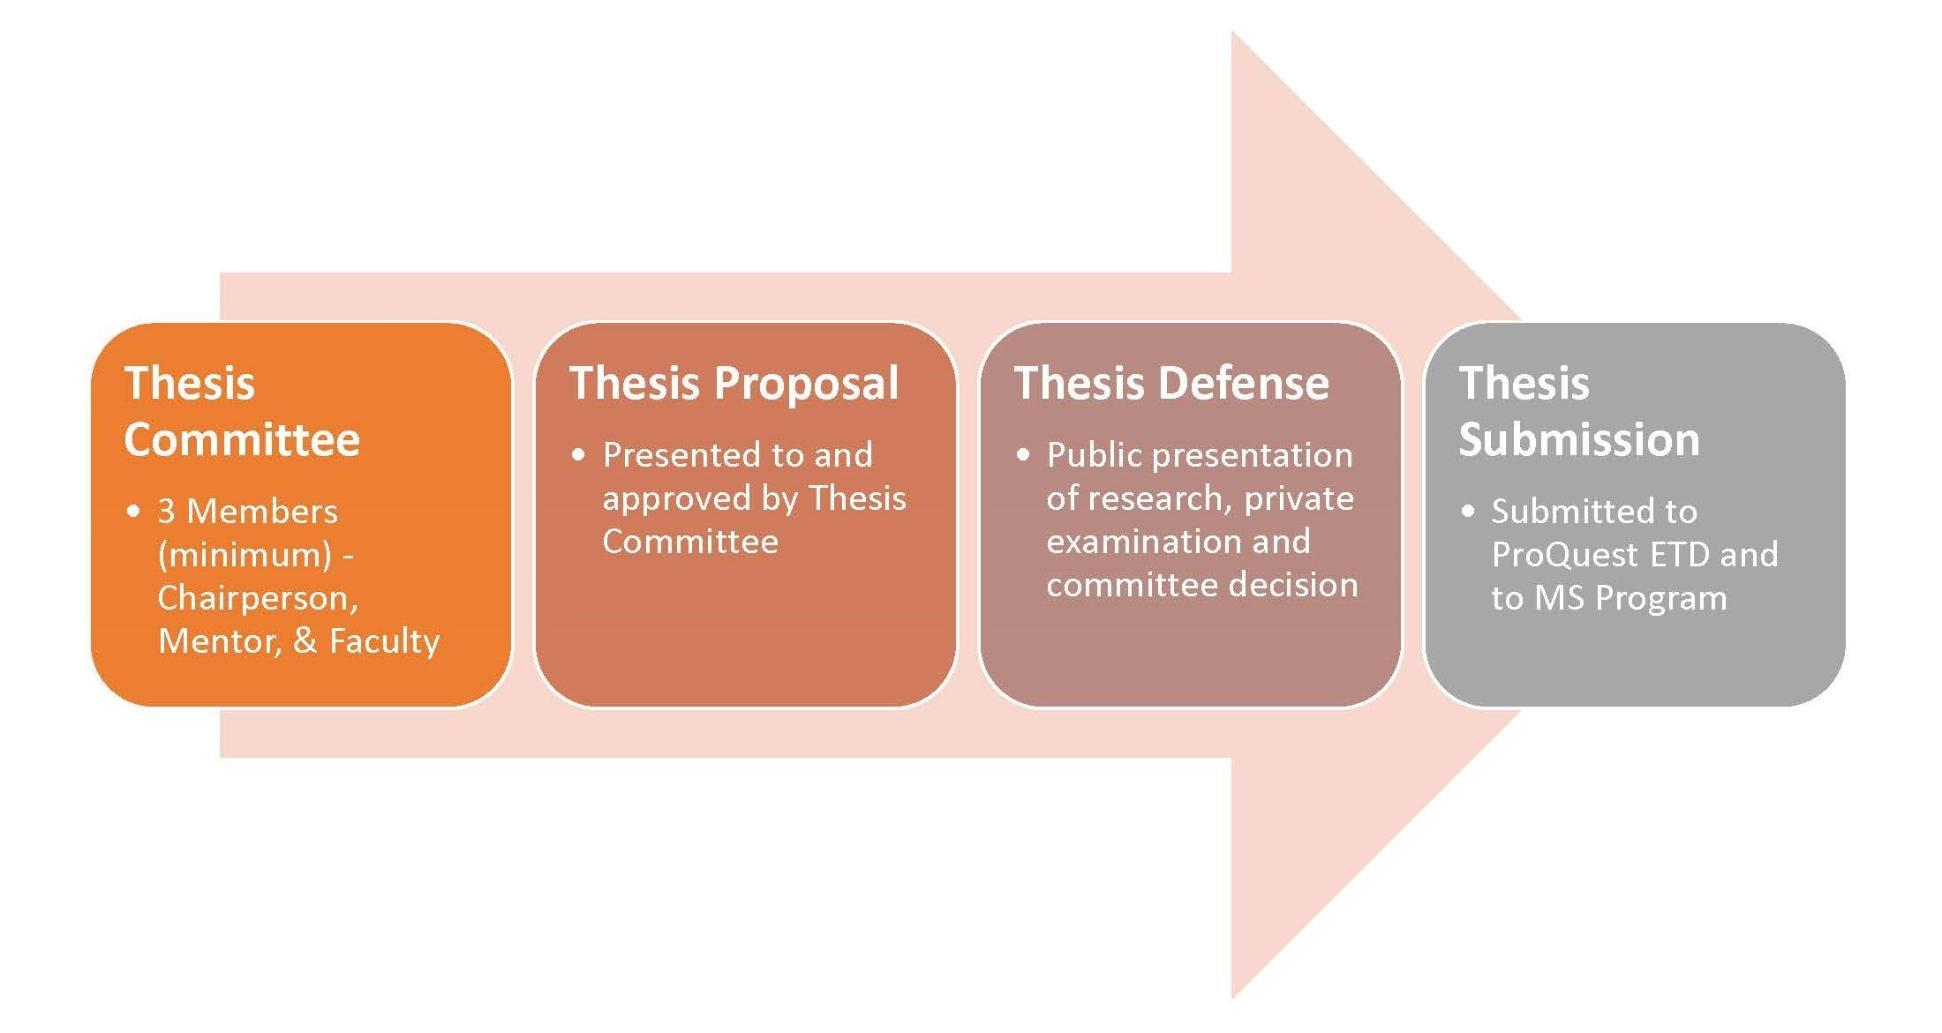 MS Thesis Process Flow Chart